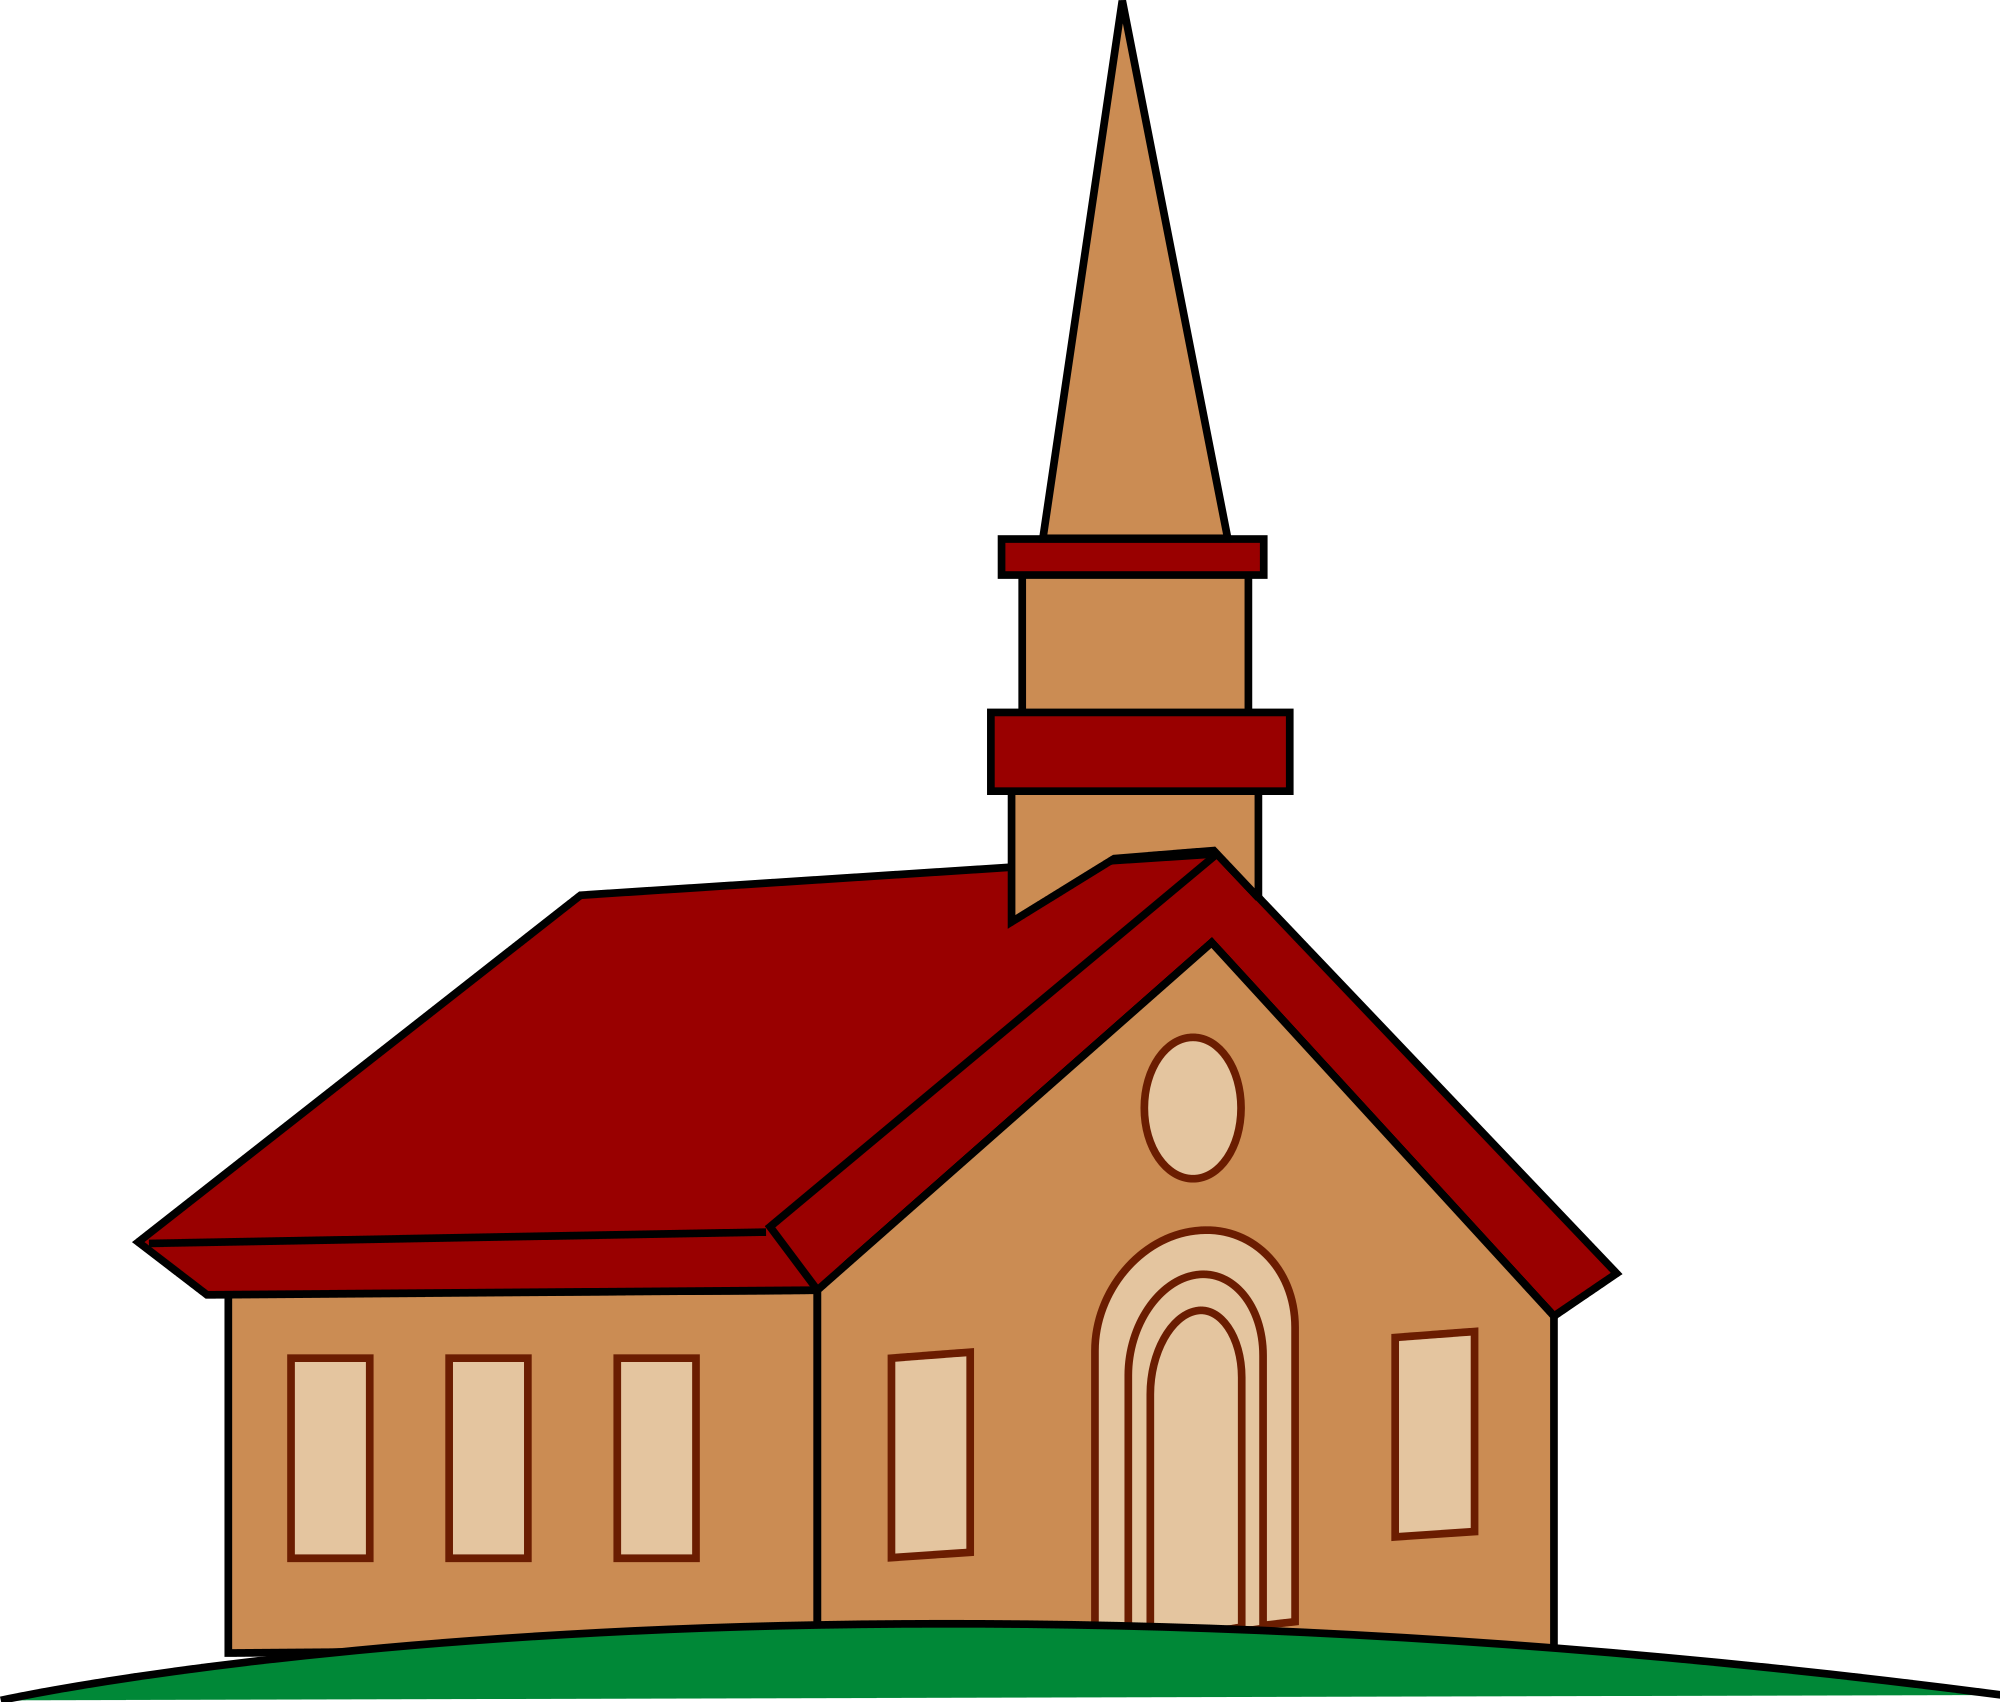 Family clipart church. Silhouette clip art at